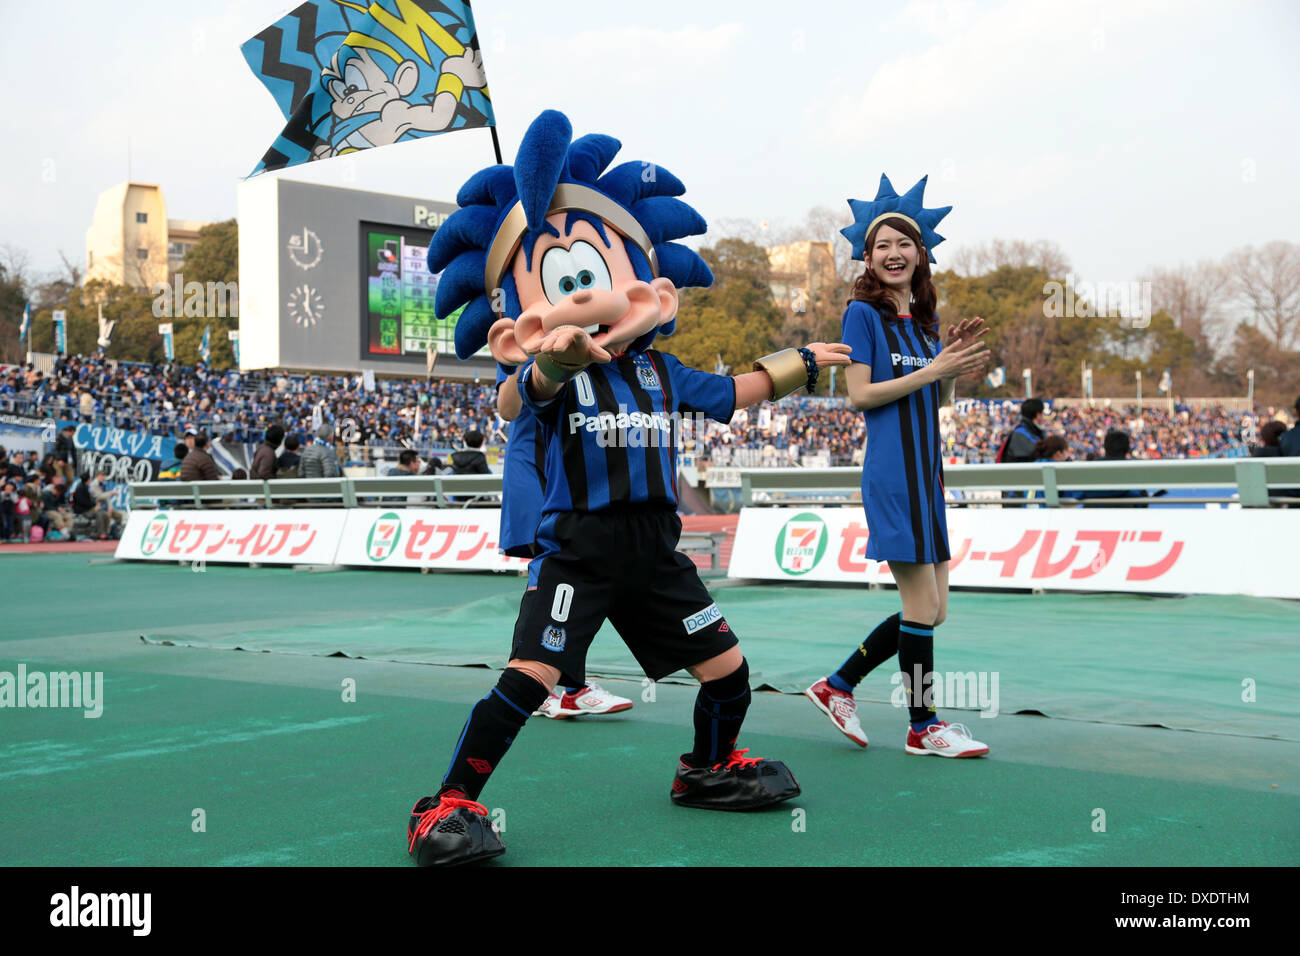 Osaka Japan 23rd Mar 2014 Gamba Boy Gamba Football Soccer Stock Photo Alamy